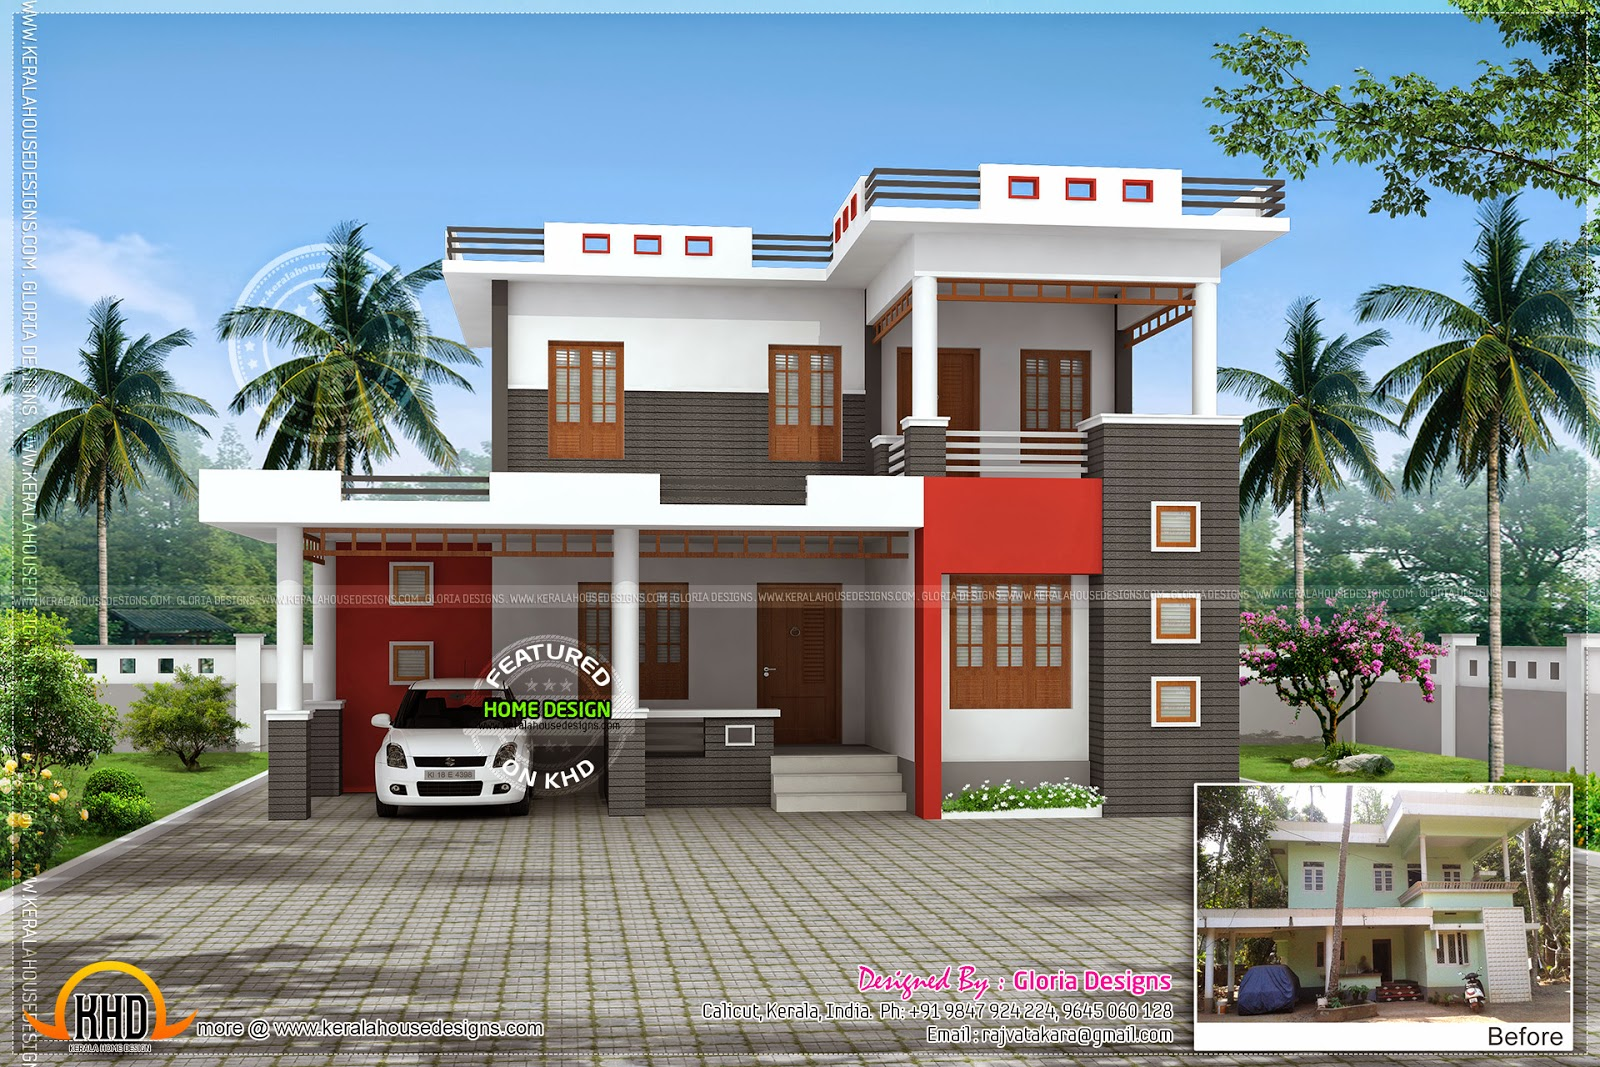 News And Article Online: Renovation 3d model for an old house  D Model House Designs on white house us models, art house models, black house models, tiny house models, small house models, school house models, apple house models, india house models, cardboard house models, metal house models, kerala house models, indian house models, architectural house models, doll house models, design house models, 2d house models, home models, beach house models, container house models, sketchup house models,